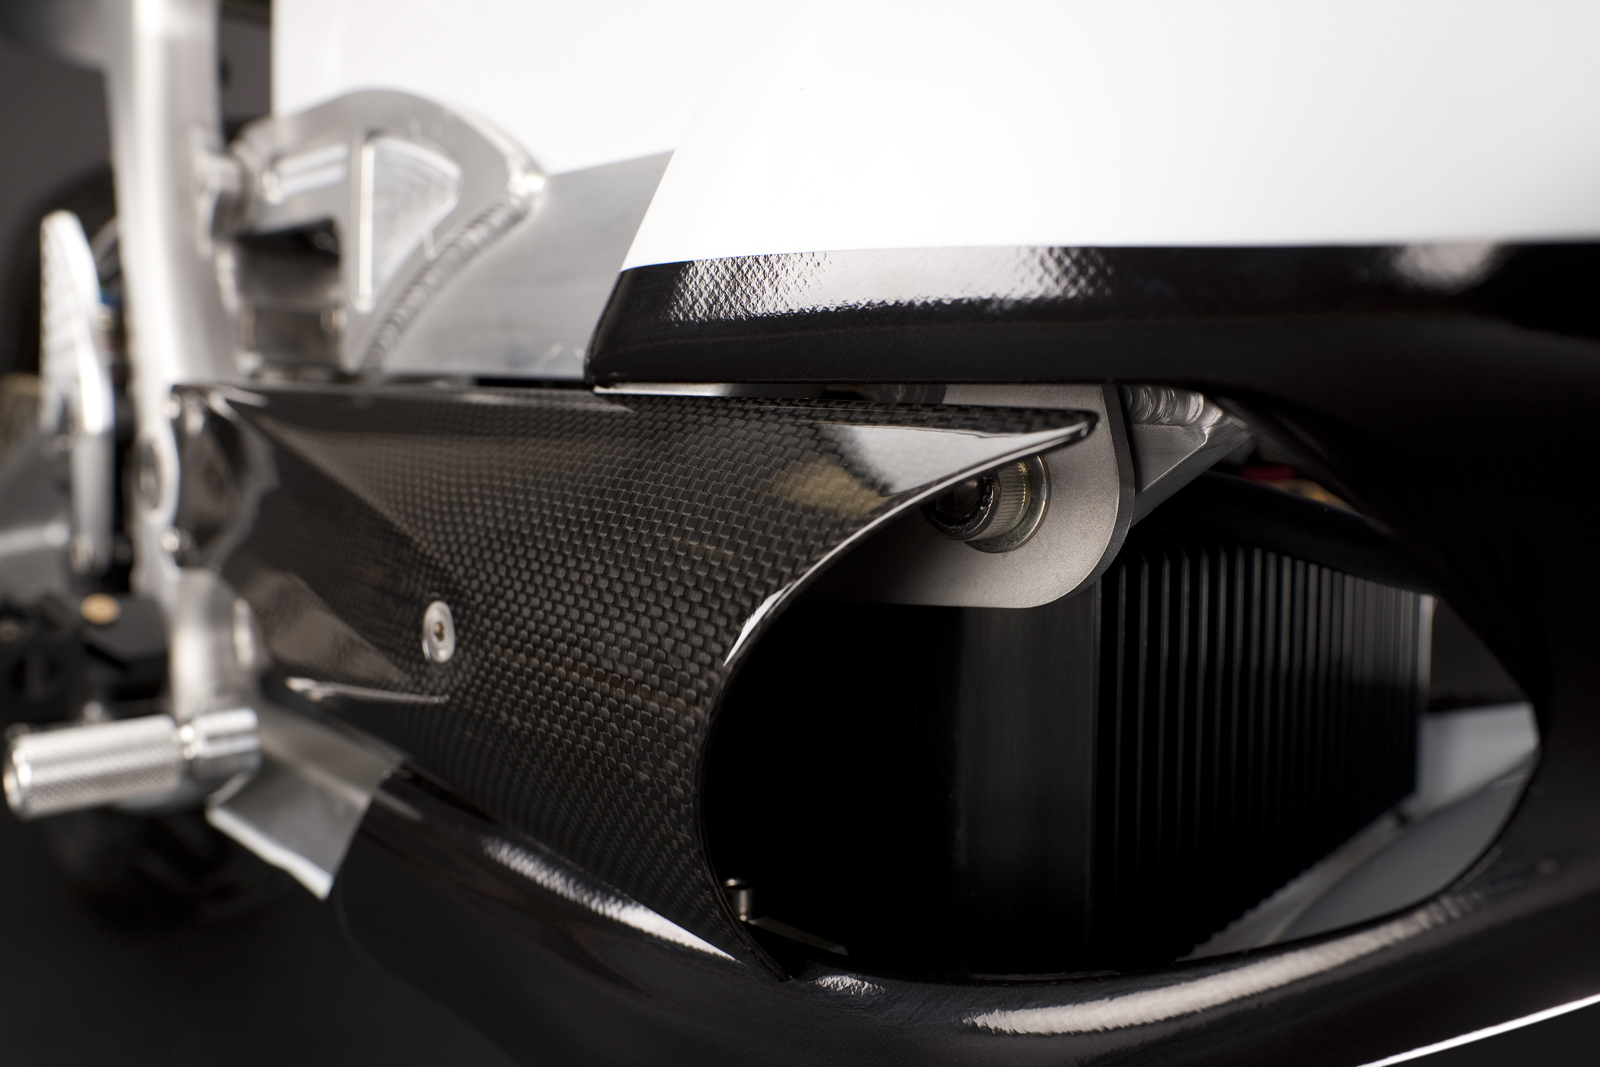 2010 Zero S Electric Motorcycle: Carbon Fiber Vents